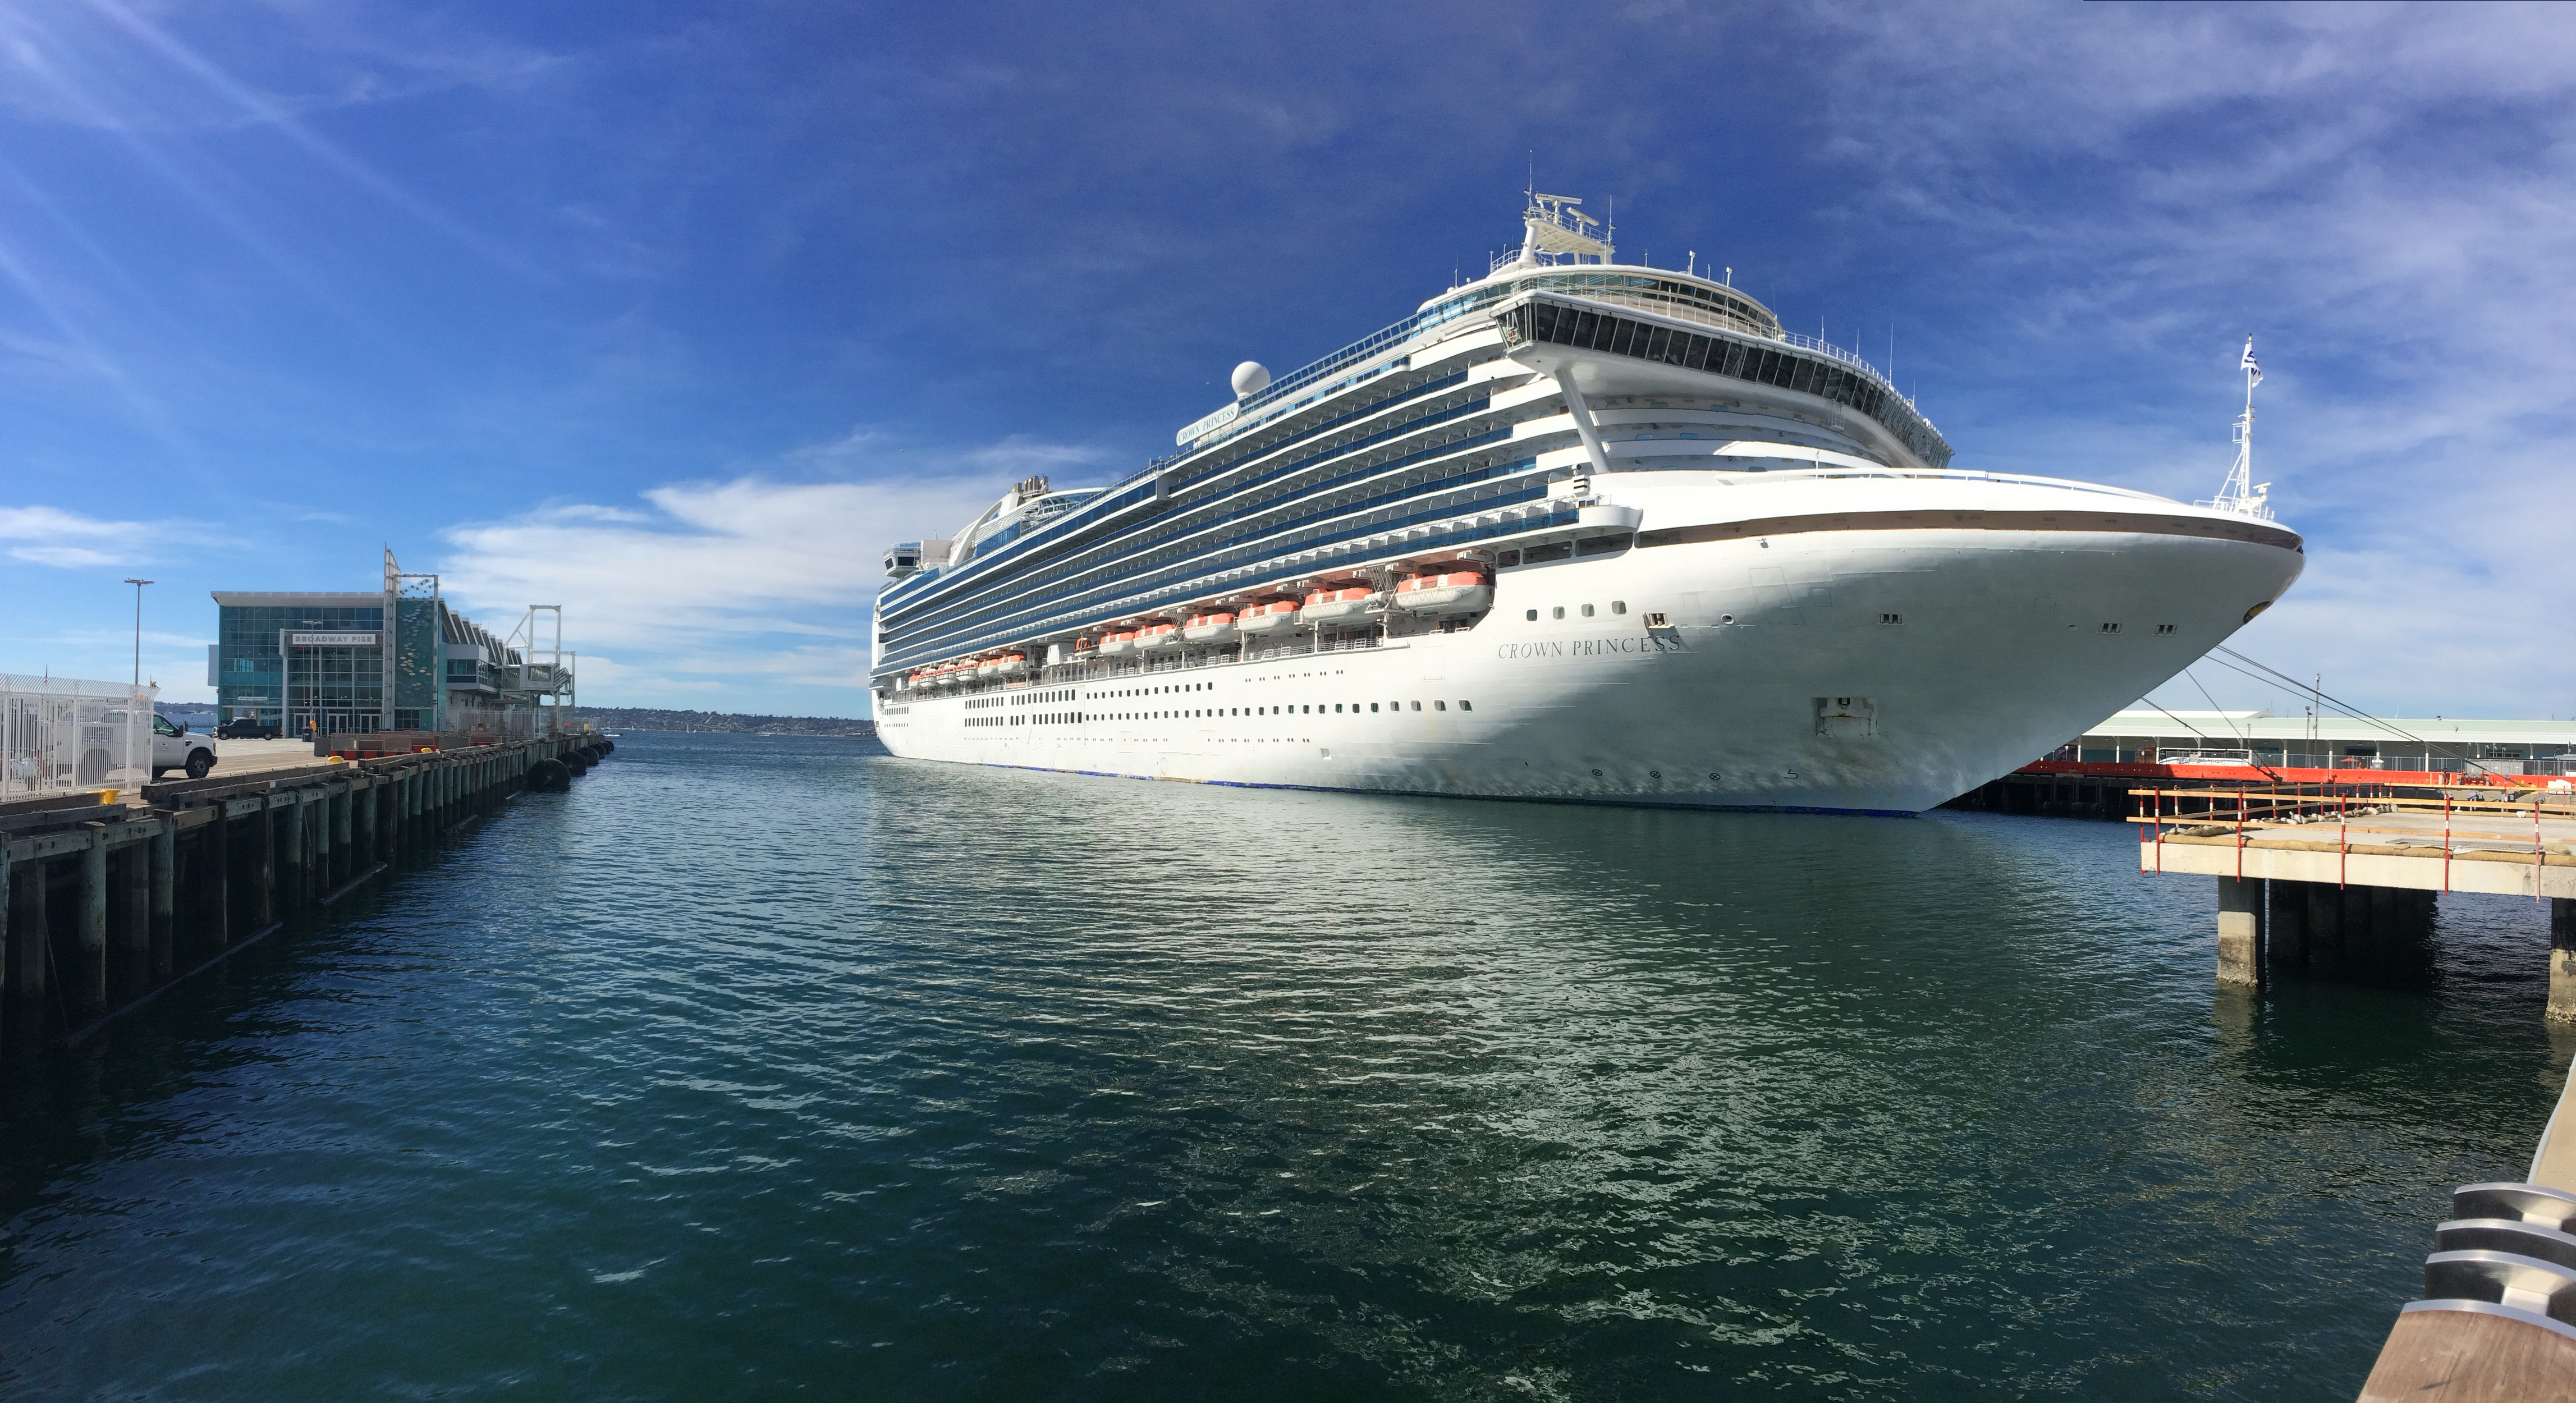 Top Cruise Destination - Crown Princess in San Diego